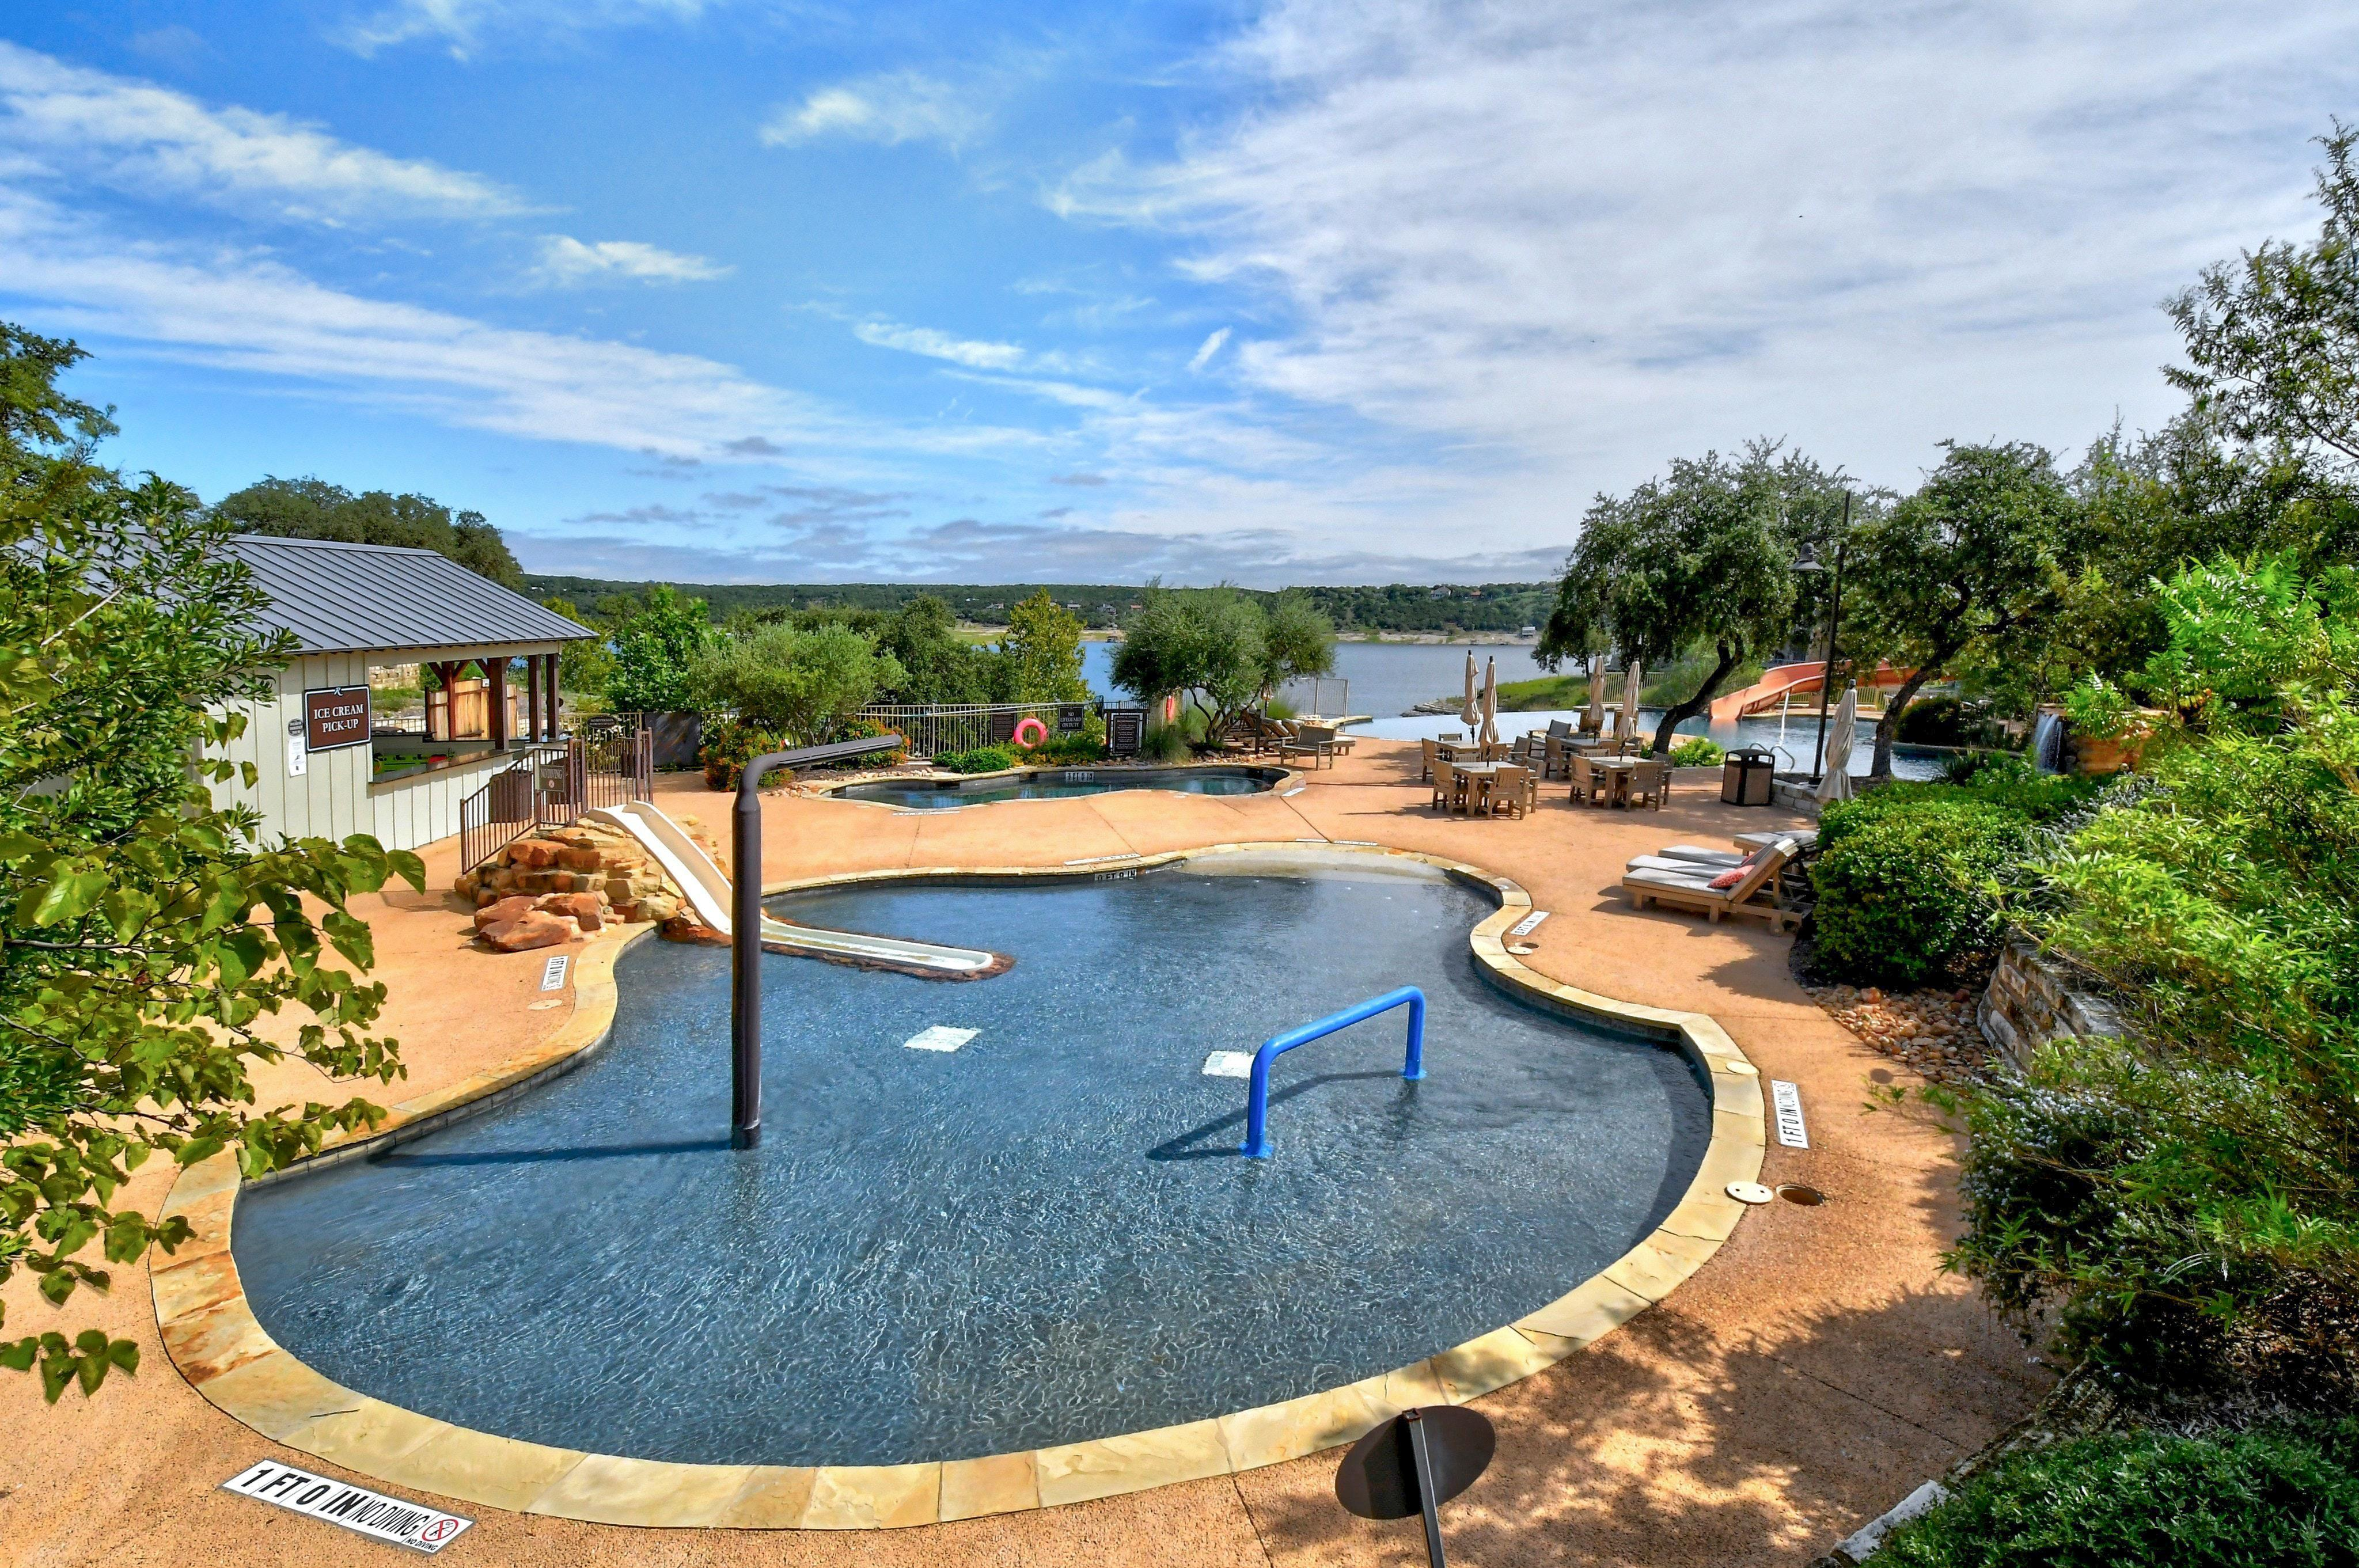 The Reserve at Lake Travis is lakefront, with a marina, lazy river pool, and tennis courts!